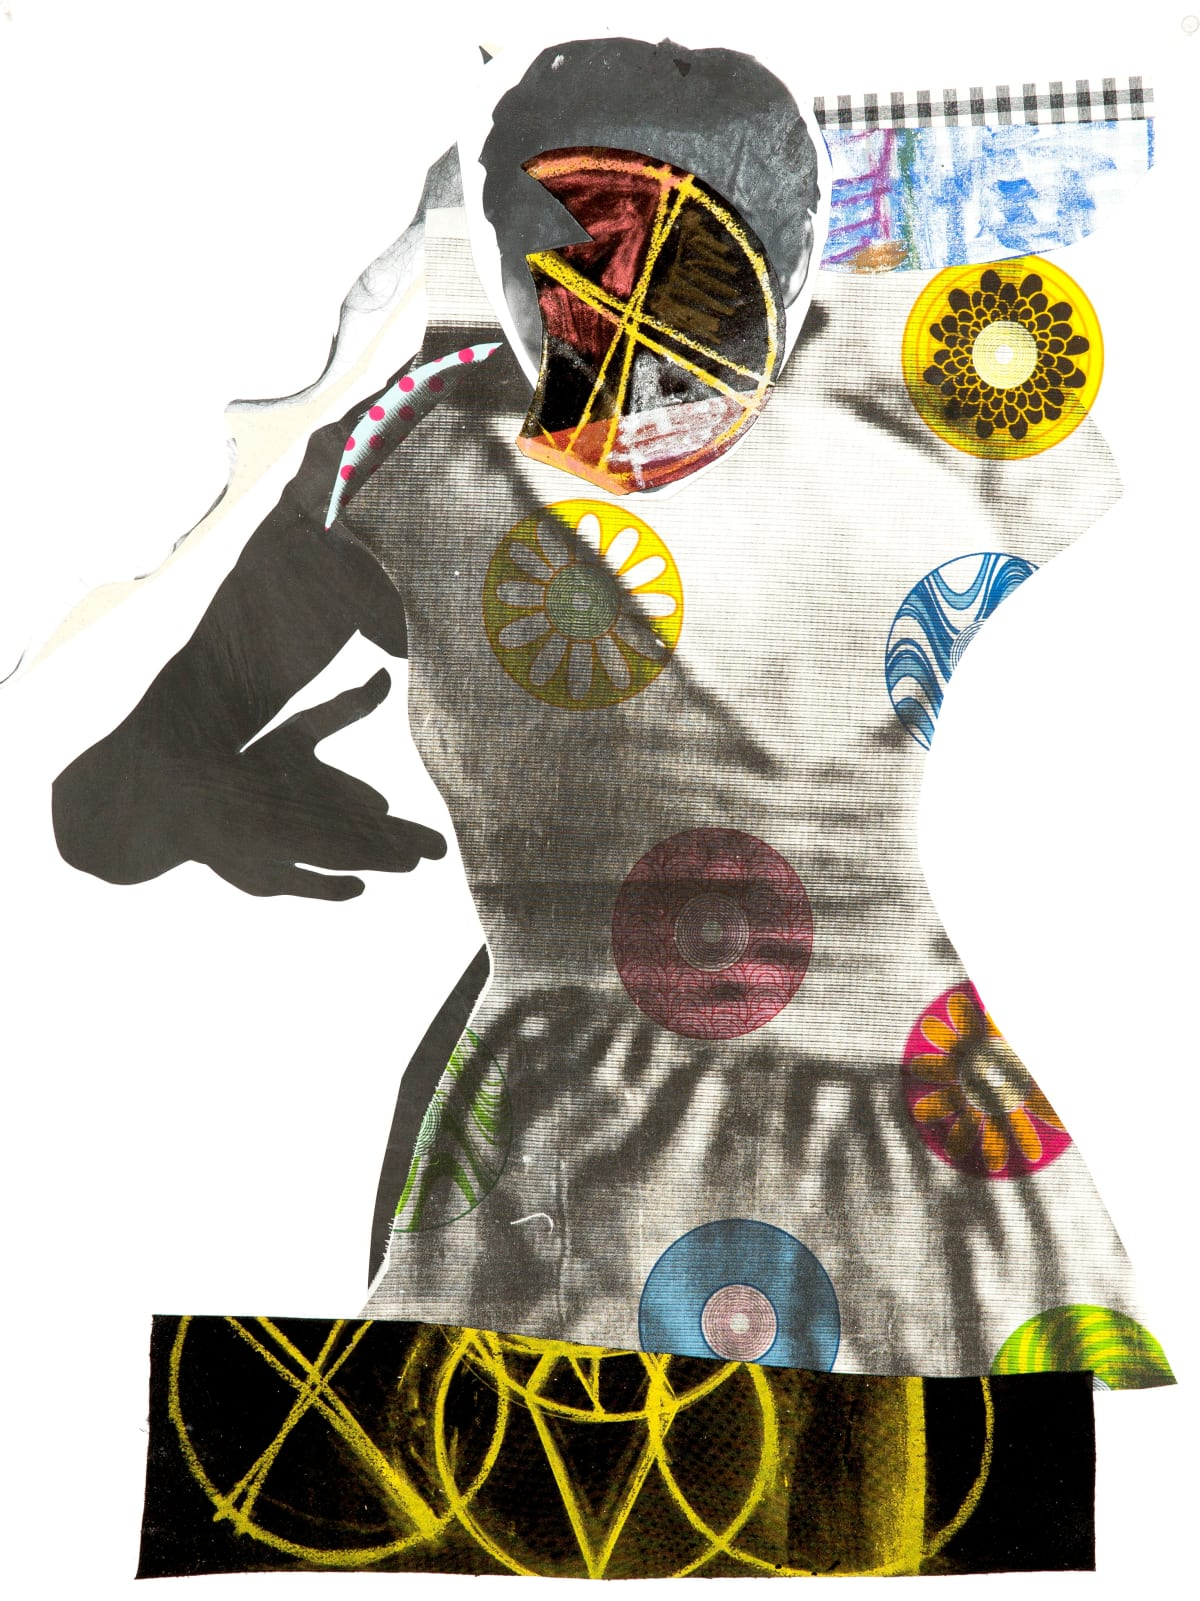 Sally Smart Choreographing Collage (Folk Geometry), 2013 collage elements on pape